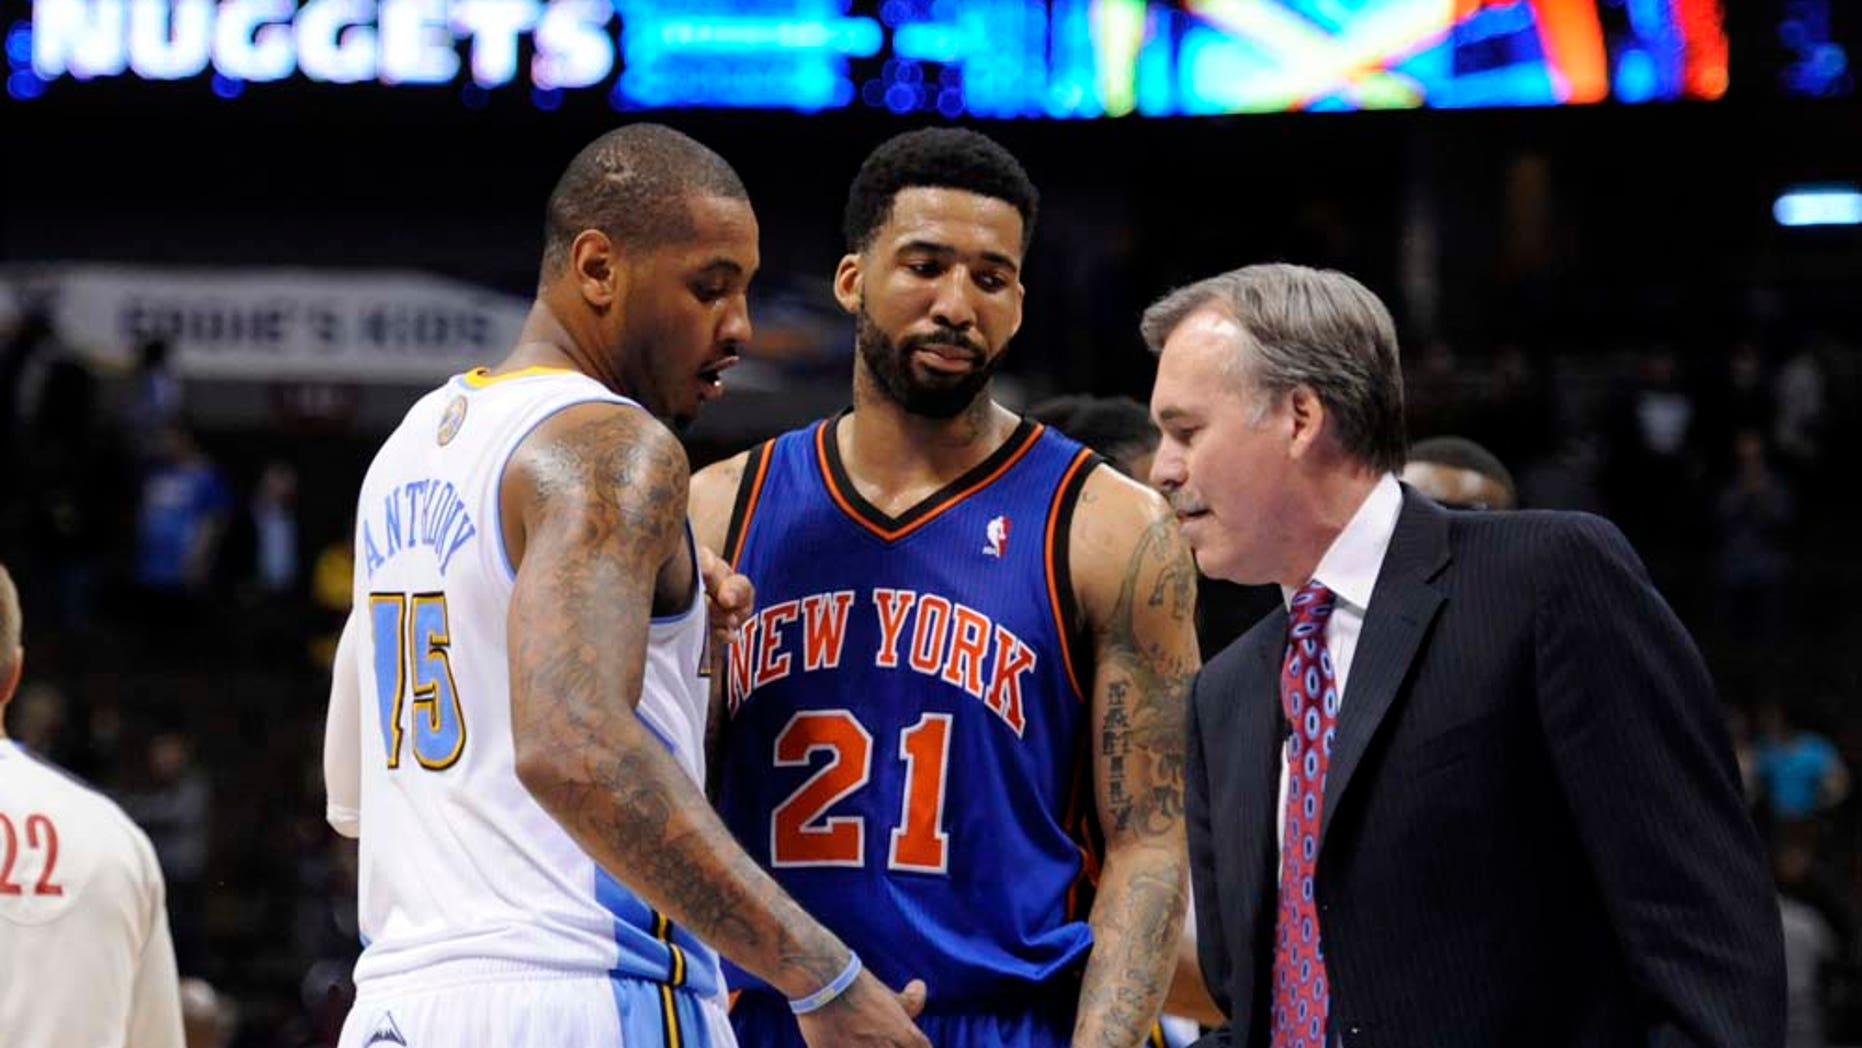 FILE - This Nov. 16, 2010, file photo shows New York Knicks head coach Mike D'Antoni shaking hands with Denver Nuggets forward Carmelo Anthony (15) as New York Knicks forward Wilson Chandler (21) looks on following an NBA basketball game, in Denver. Listening to Nets coach Avery Johnson, the monster deal to bring Anthony from Denver to New Jersey might be on hold. Hours before leaving for a four-game West Coast road trip, Johnson said Tuesday, Jan. 11, 2011,  he didn't expect any roster changes during the trip. (AP Photo/Jack Dempsey, File)